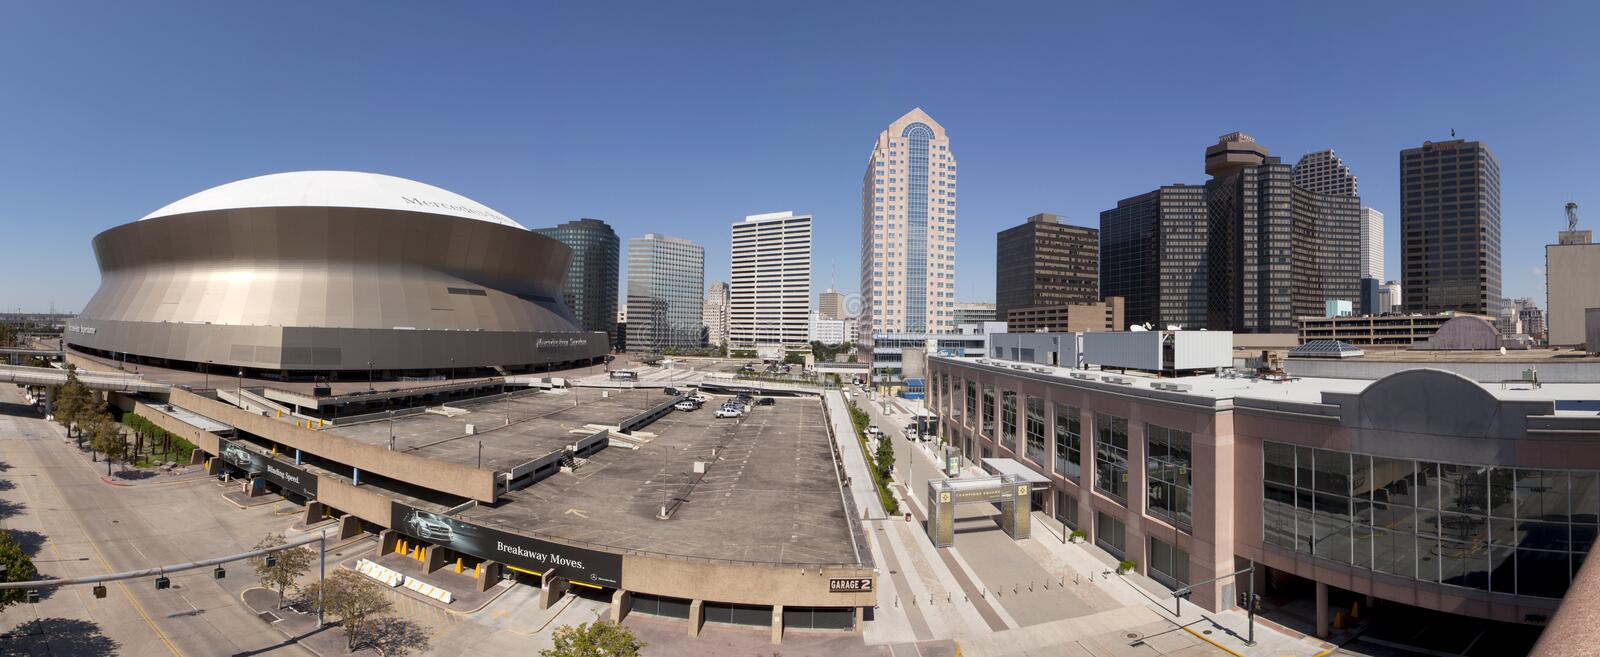 New Orleans and Superdome (panoramic) royalty free stock photos